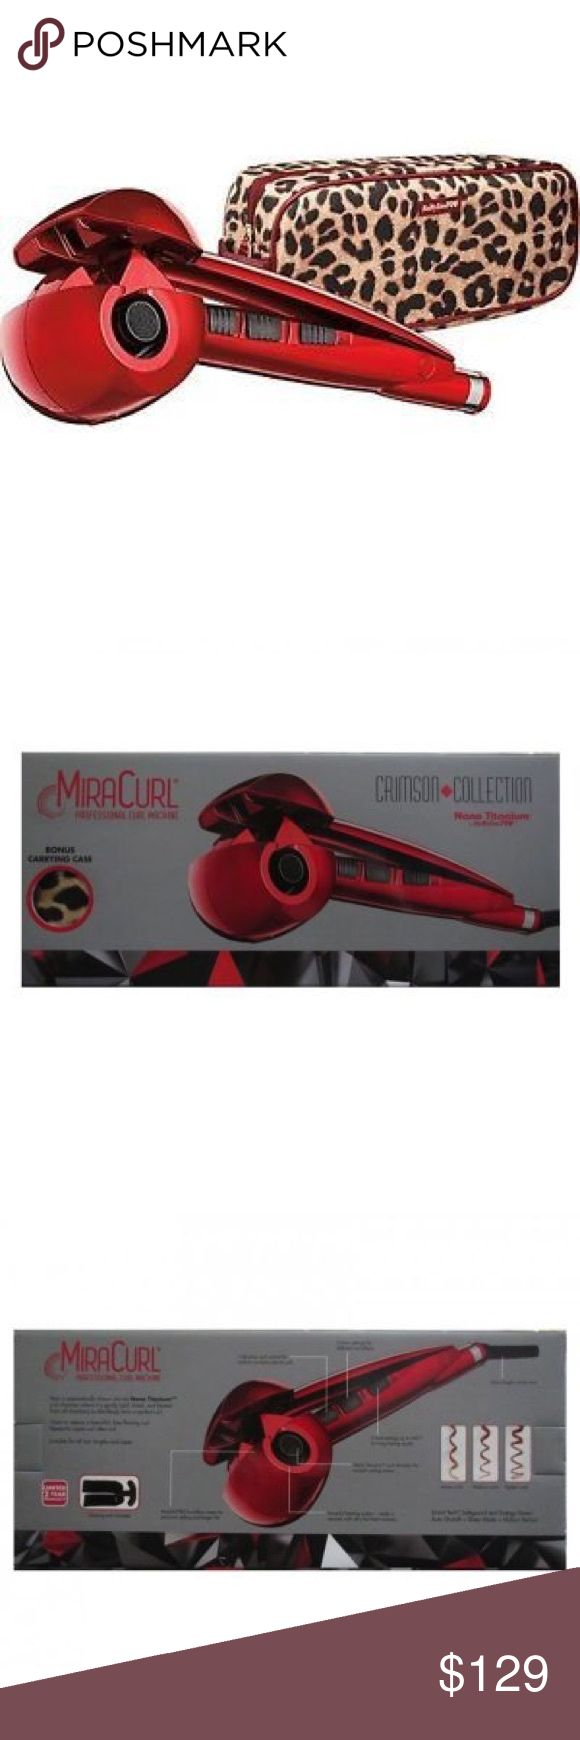 Babyliss MiraCurl Professional Curl Machine - Red Babyliss MiraCurl Professional Hair Curling Machine in limited-edition red. Like new condition. Used once and works great! Easy, perfect curls! But, I unfortunately never needed it again and won't get enough use out of it to be worth keeping. Comes with leopard print case/bag. Babyliss Other